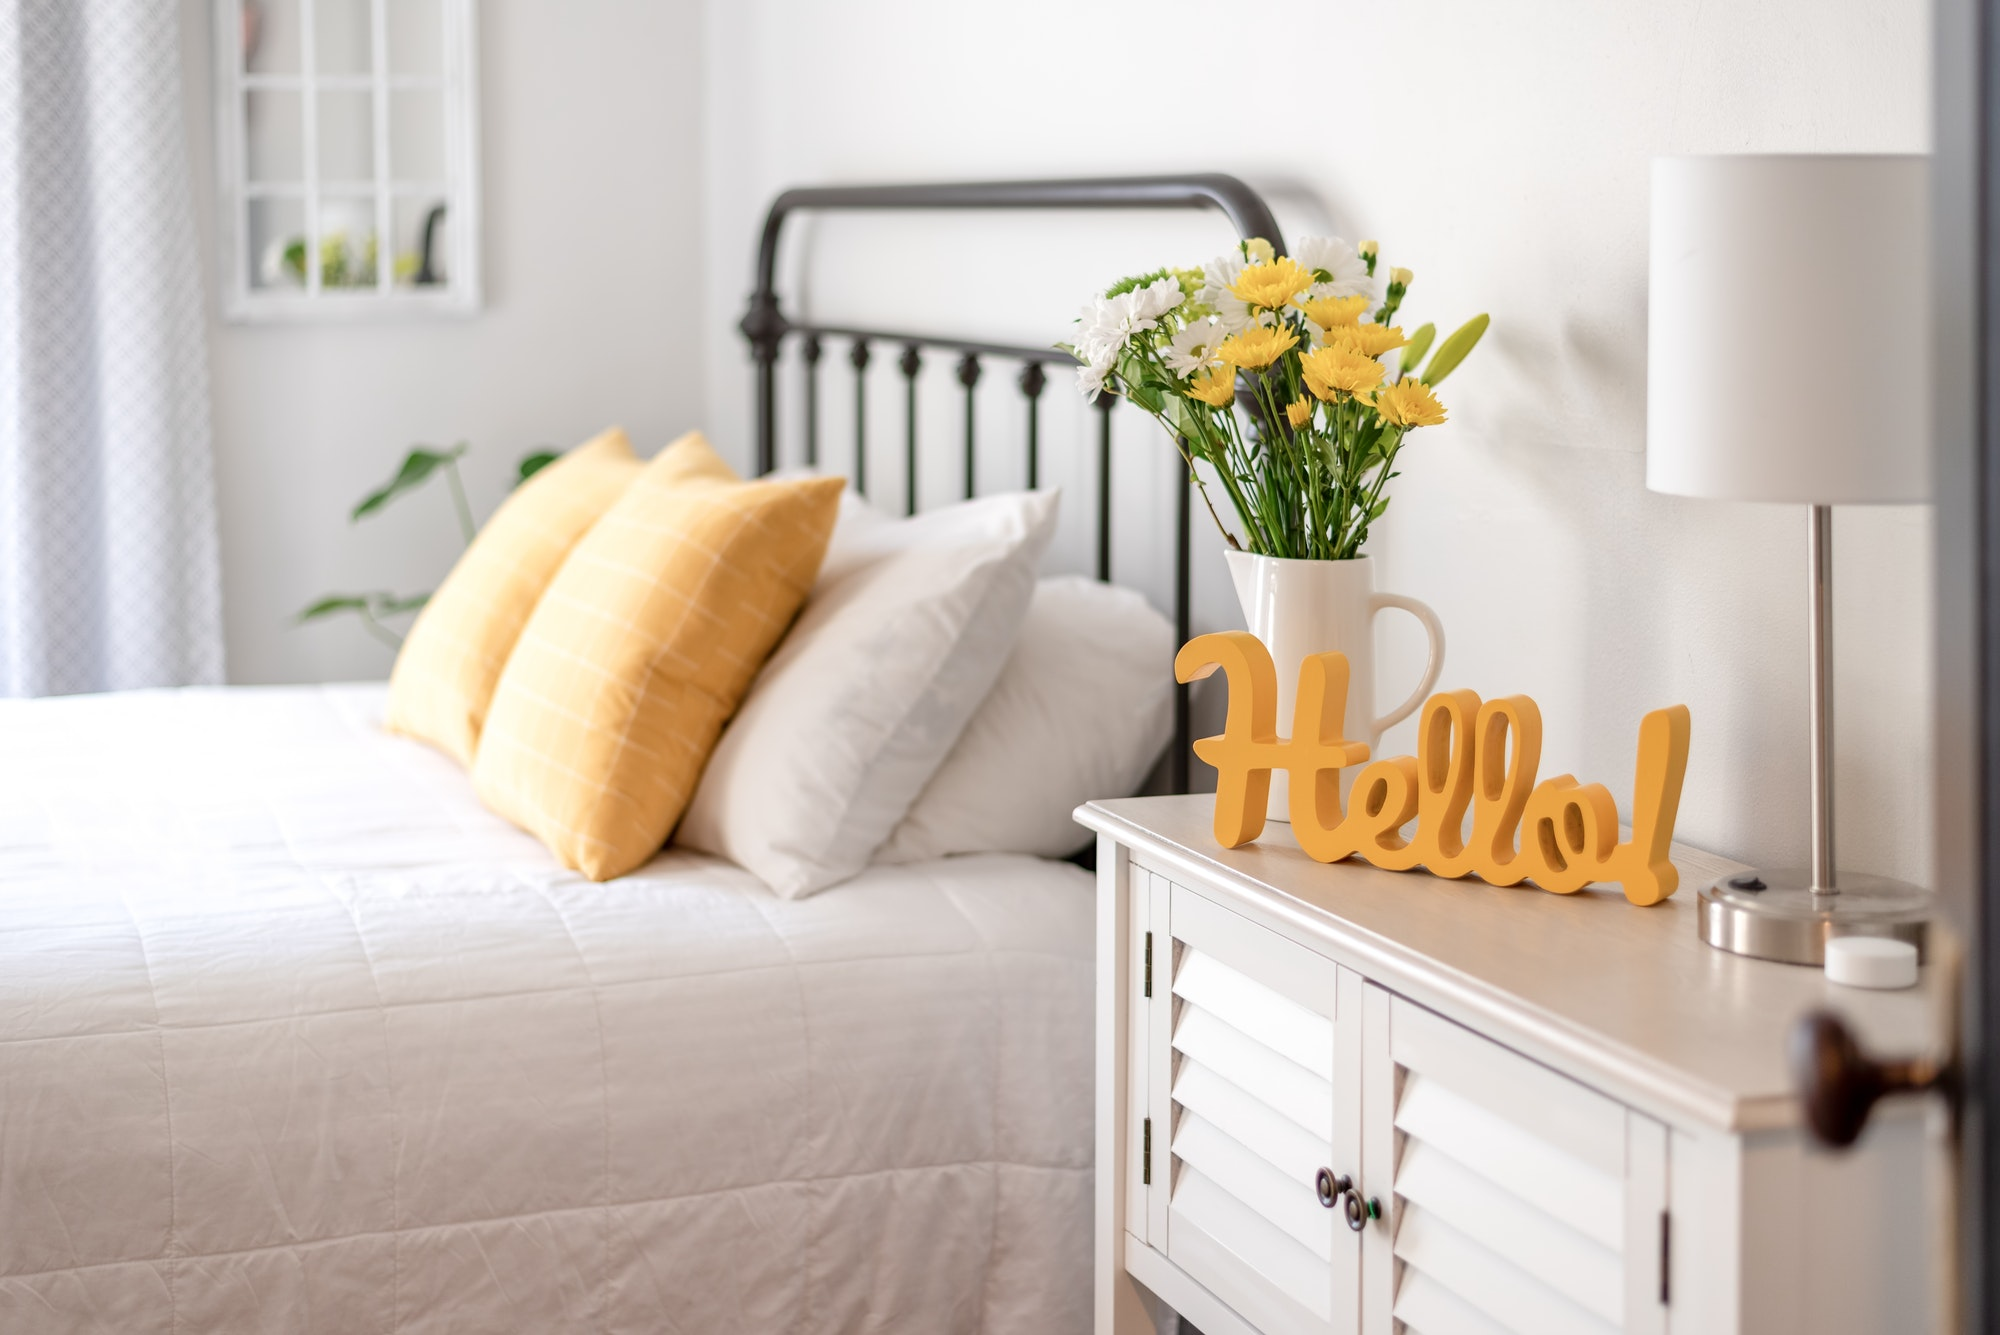 cheerful-hello-sign-and-fresh-flowers-in-a-clean-and-bright-bedroom.jpg